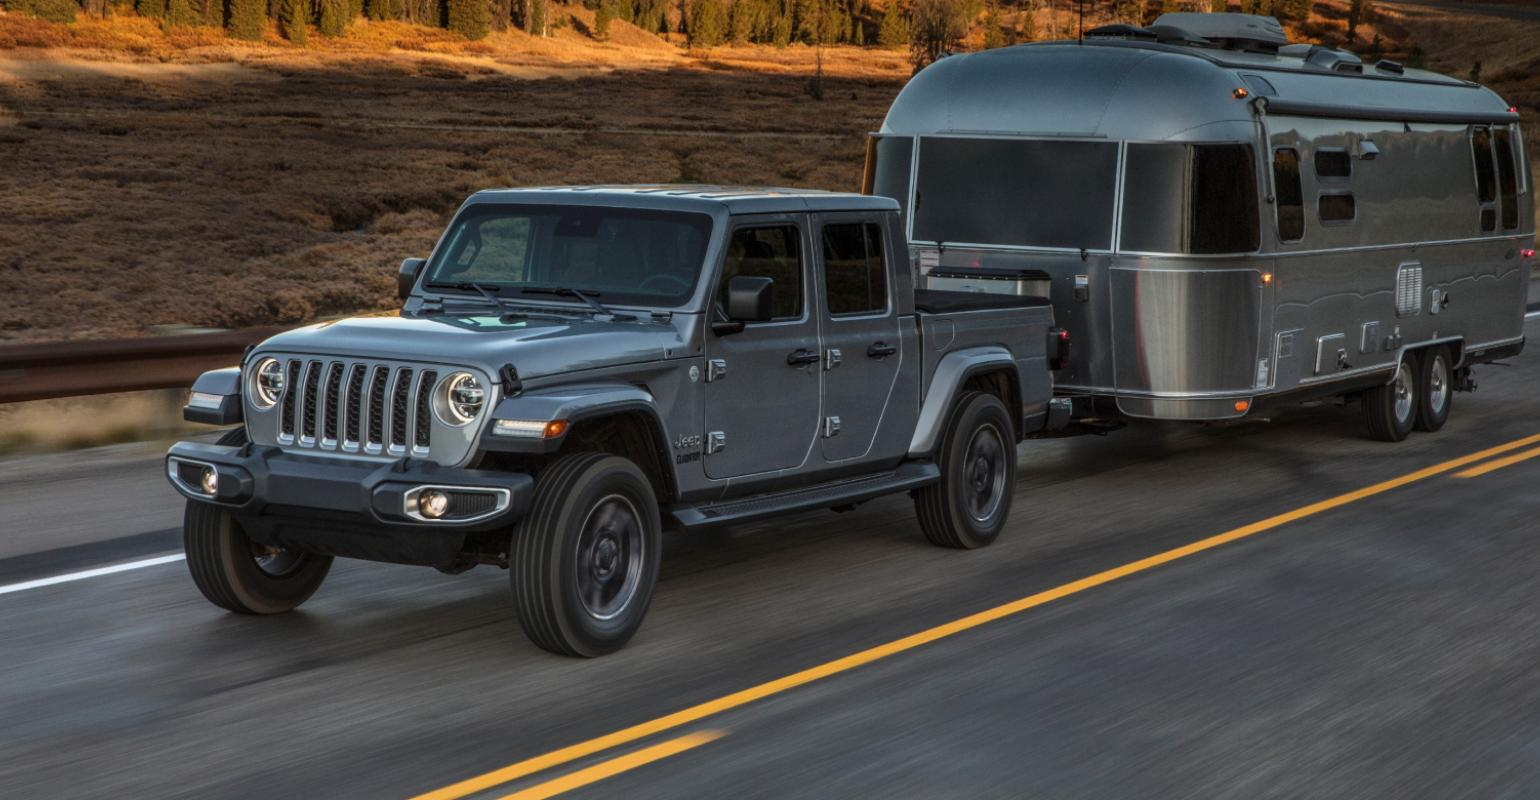 2020 Jeep Gladiator Armed And Ready For Pickup Battle Wardsauto